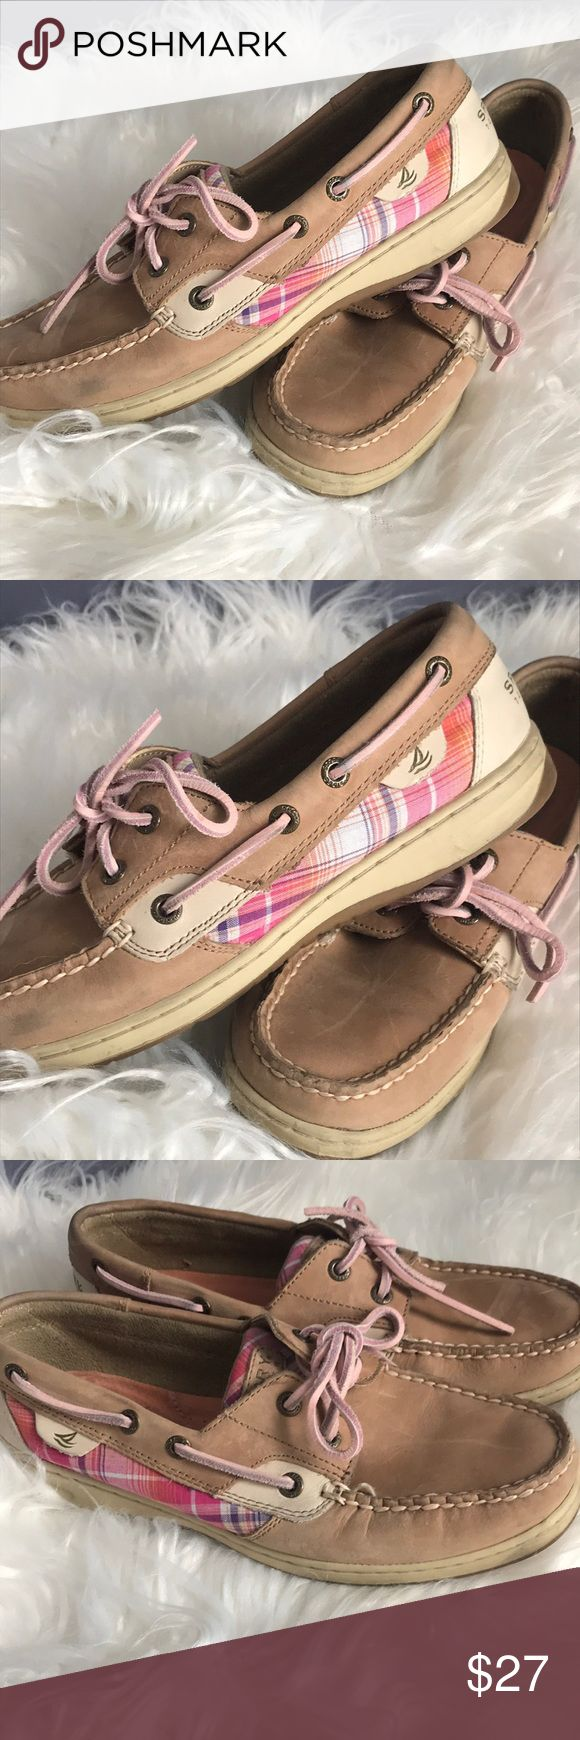 Sperry Topsider pink plaid 7.5 Great condition Sperry Topsider in pink plaid with pink leather laces. Non marking sole. Minimal wear, light color transfer on one shoe, see pics. Size 7.5 Sperry Top-Sider Shoes Flats & Loafers #watches #watch #USA